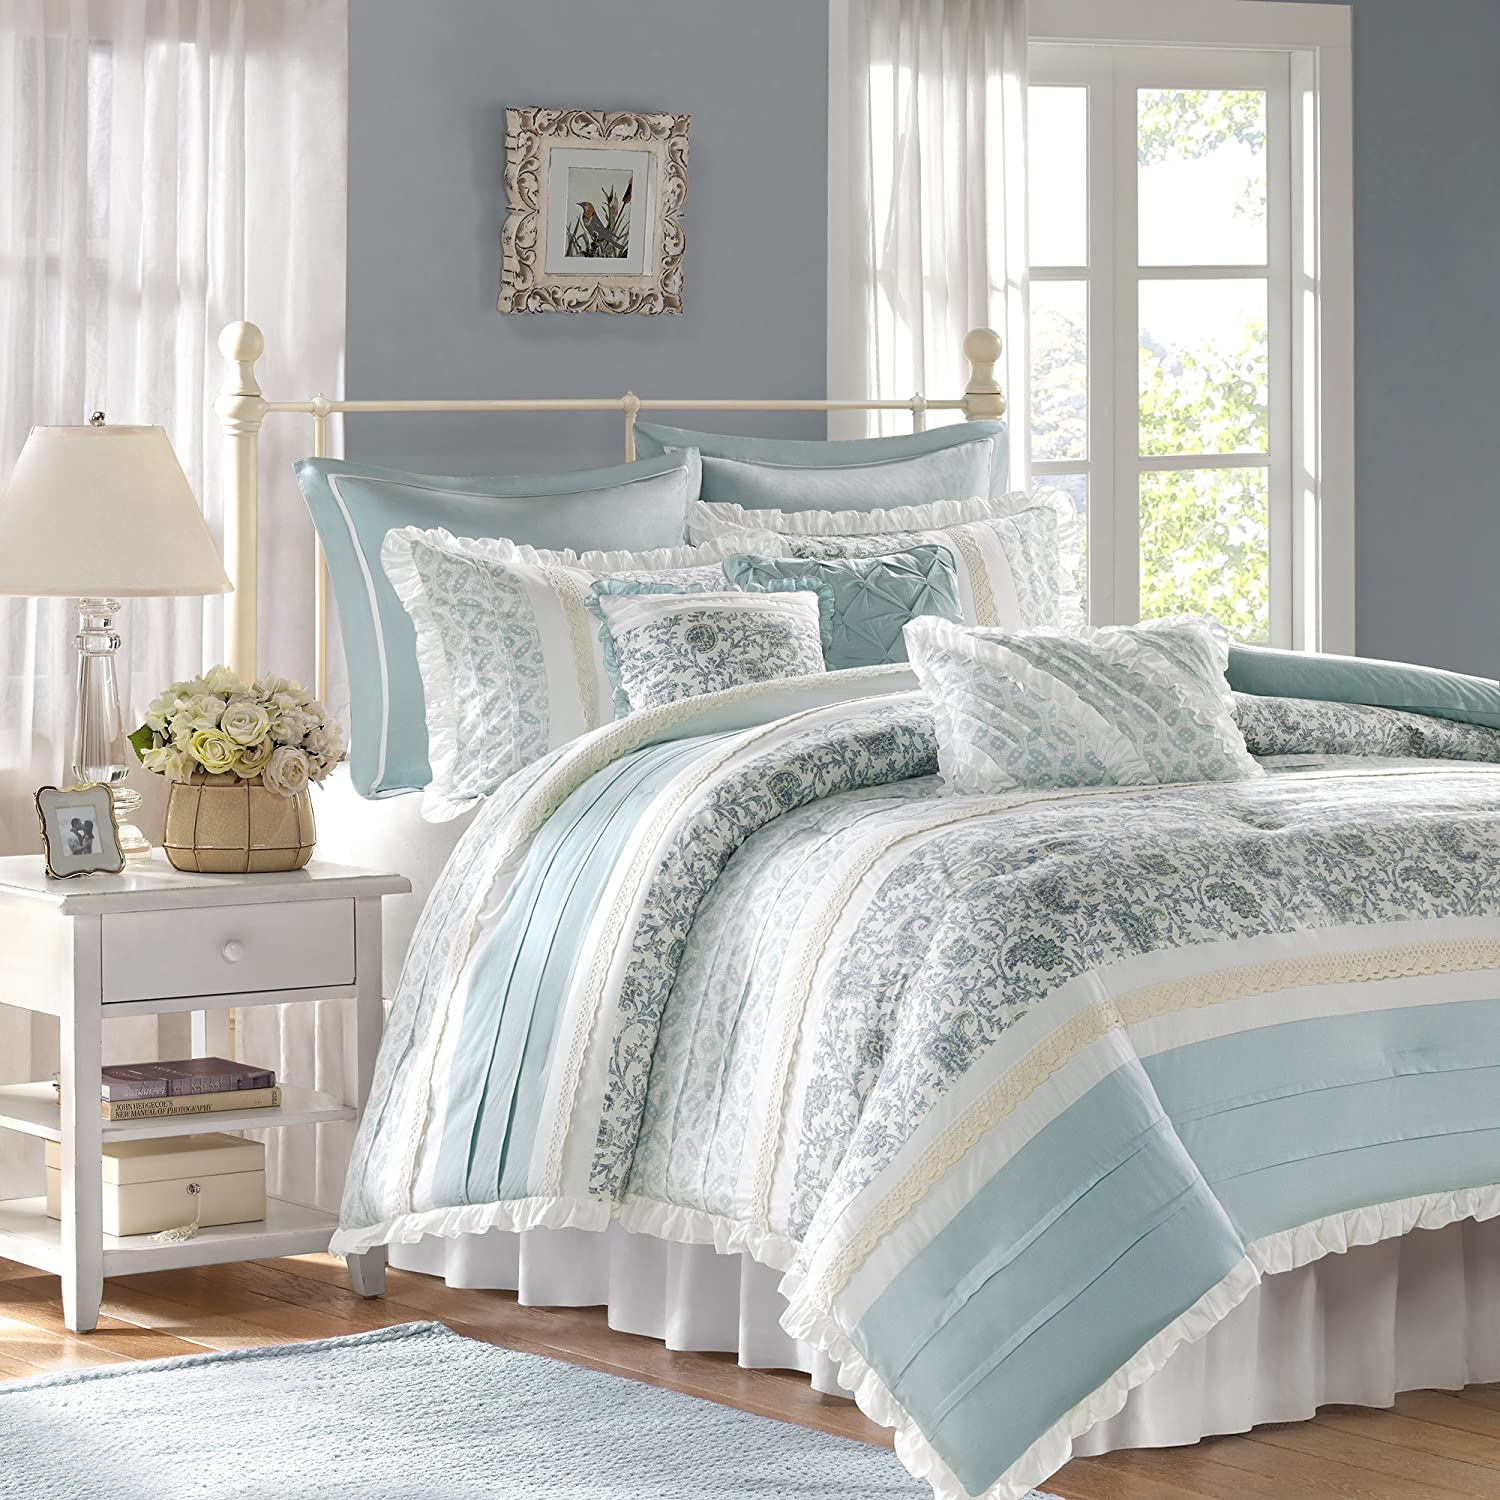 Madison Park Dawn 9 Piece Cotton Percale Comforter Set, Blue